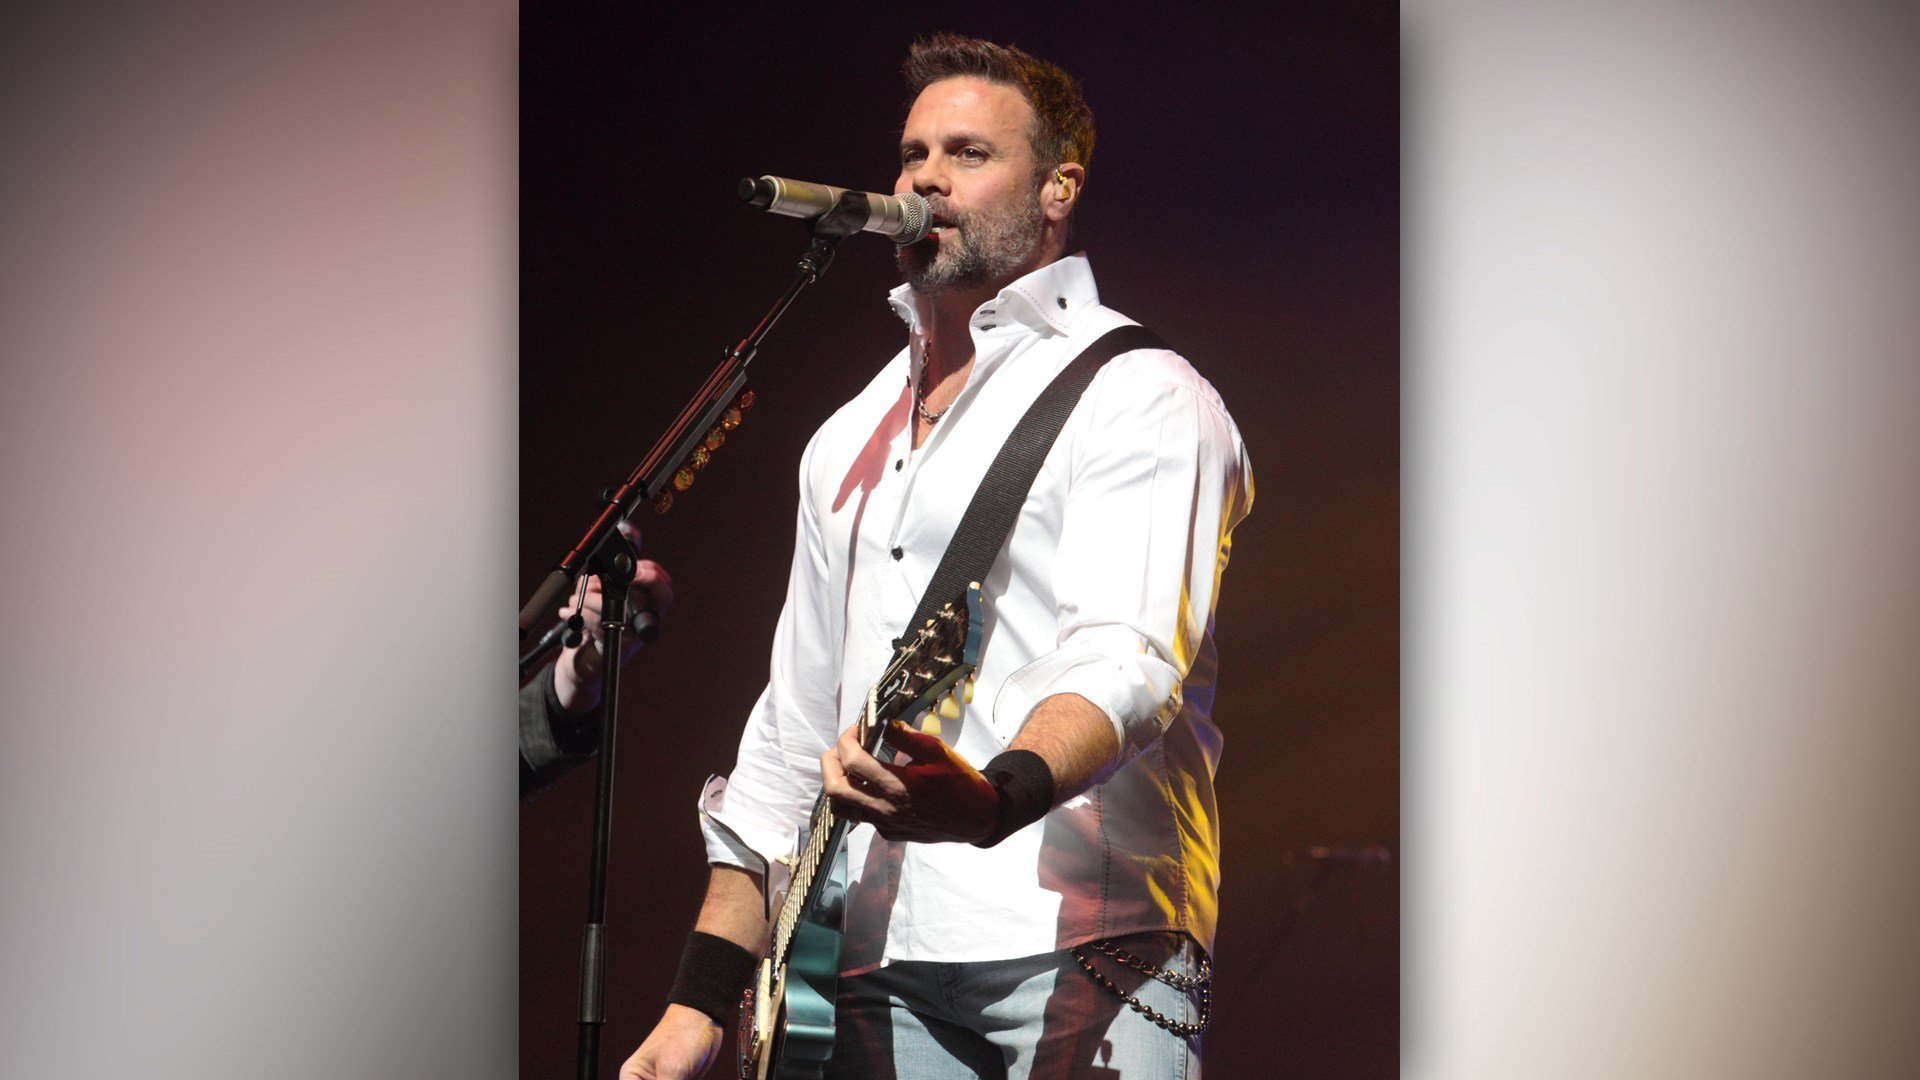 Singer Troy Gentry Dies in Helicopter Crash